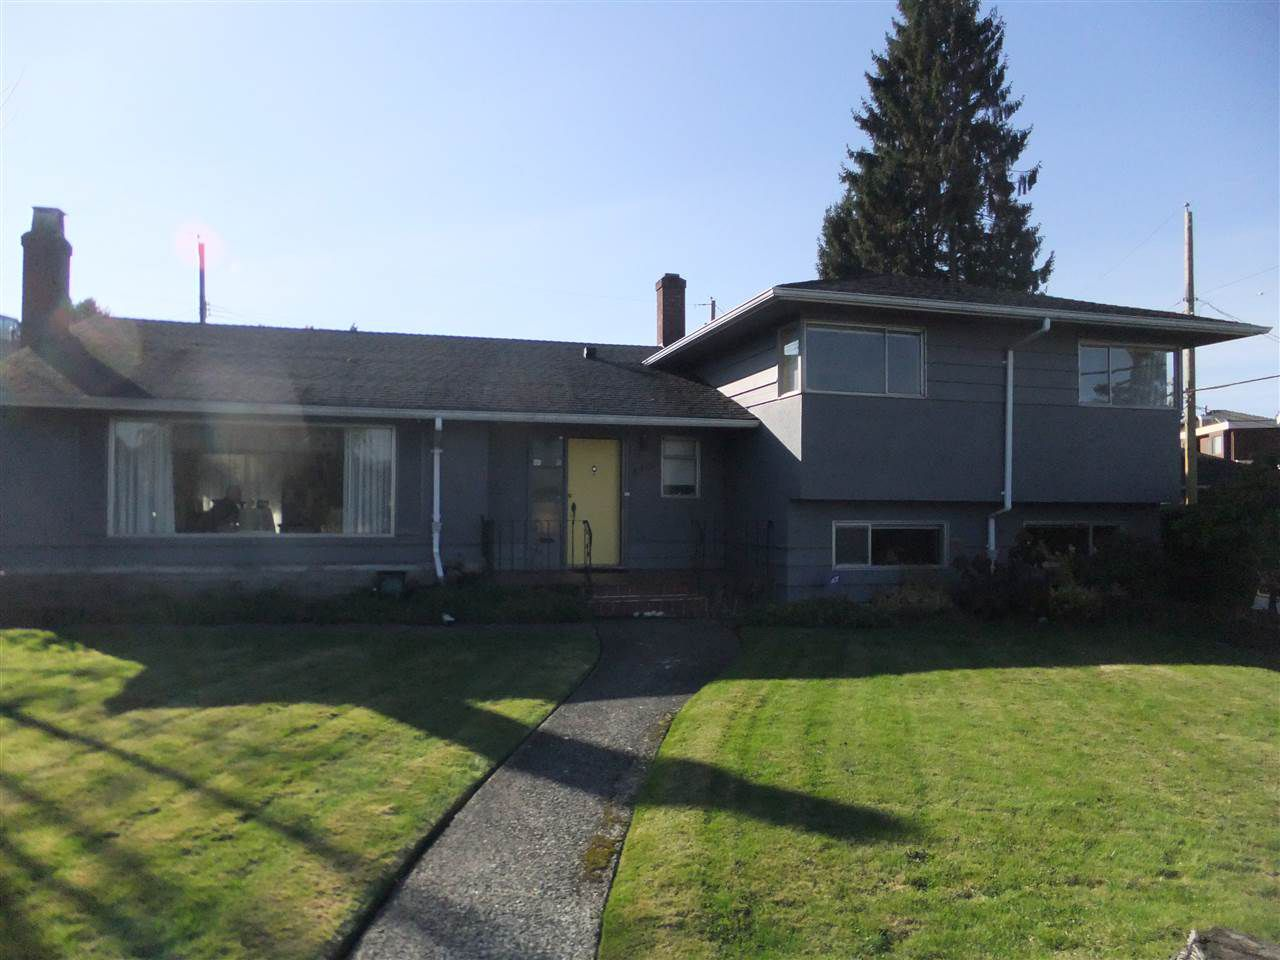 Main Photo: 4407 HAGGART Street in Vancouver: Quilchena House for sale (Vancouver West)  : MLS®# R2219578